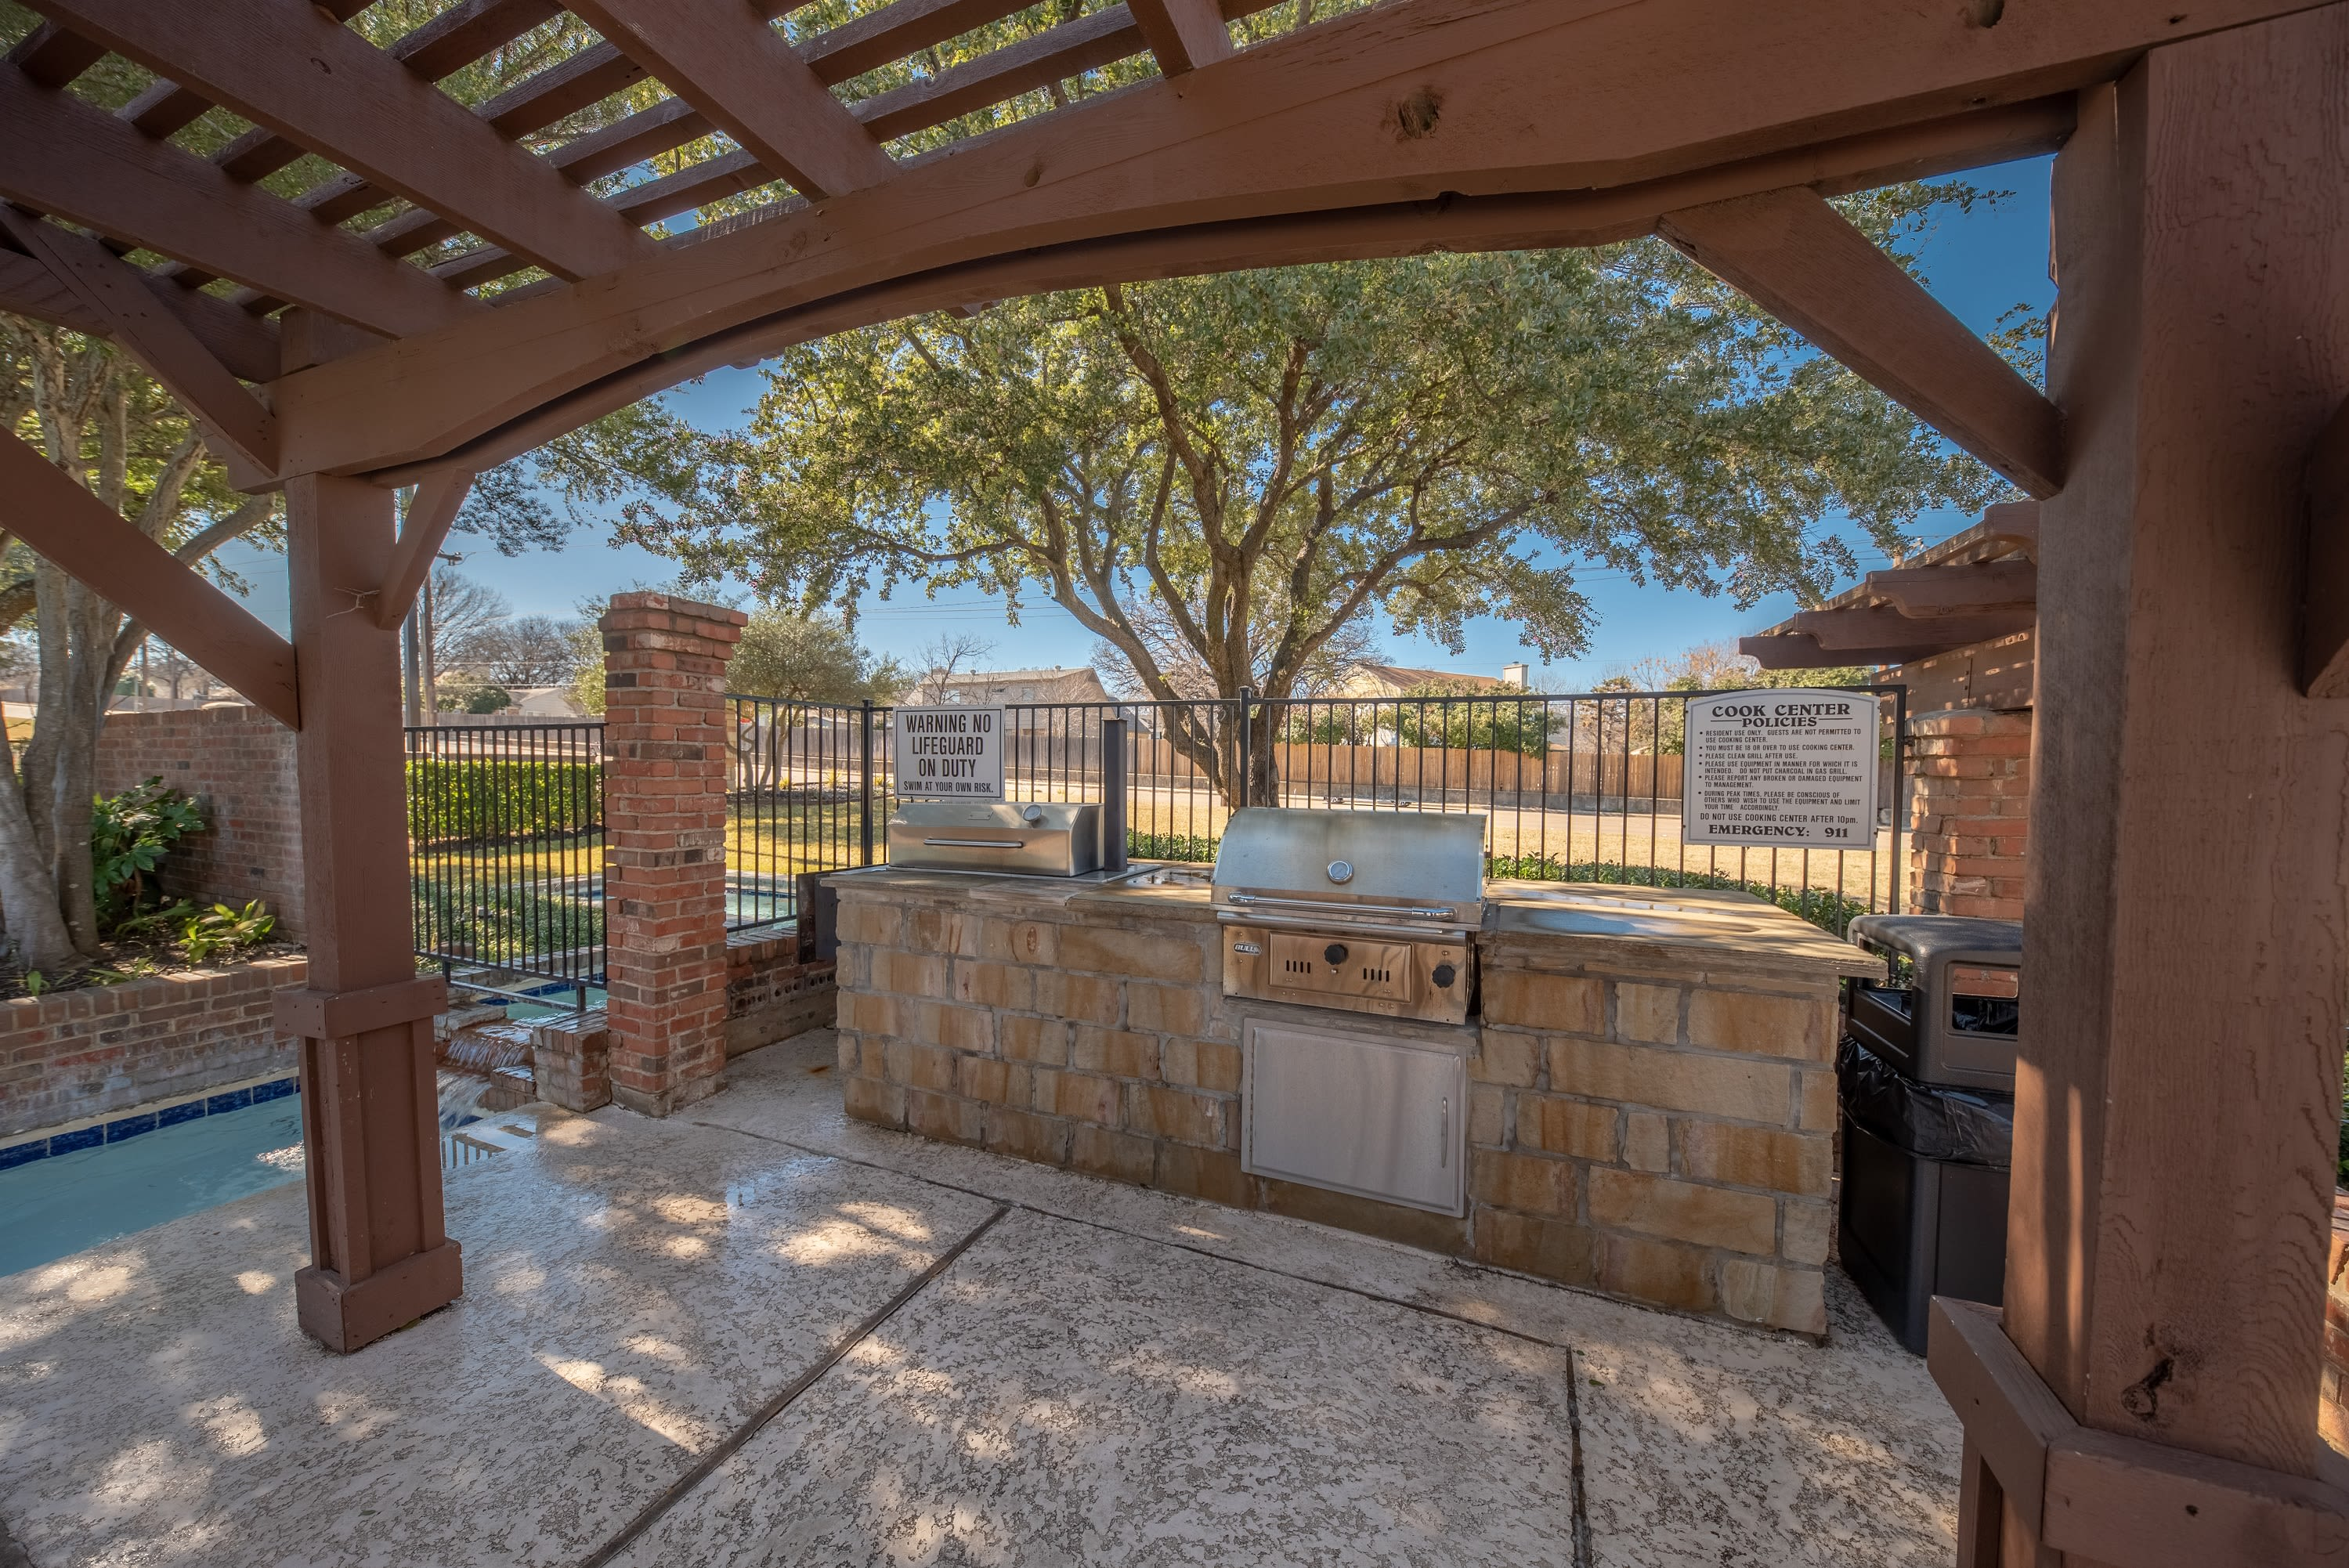 Poolside BBQ at Village Green of Bear Creek in Euless, Texas